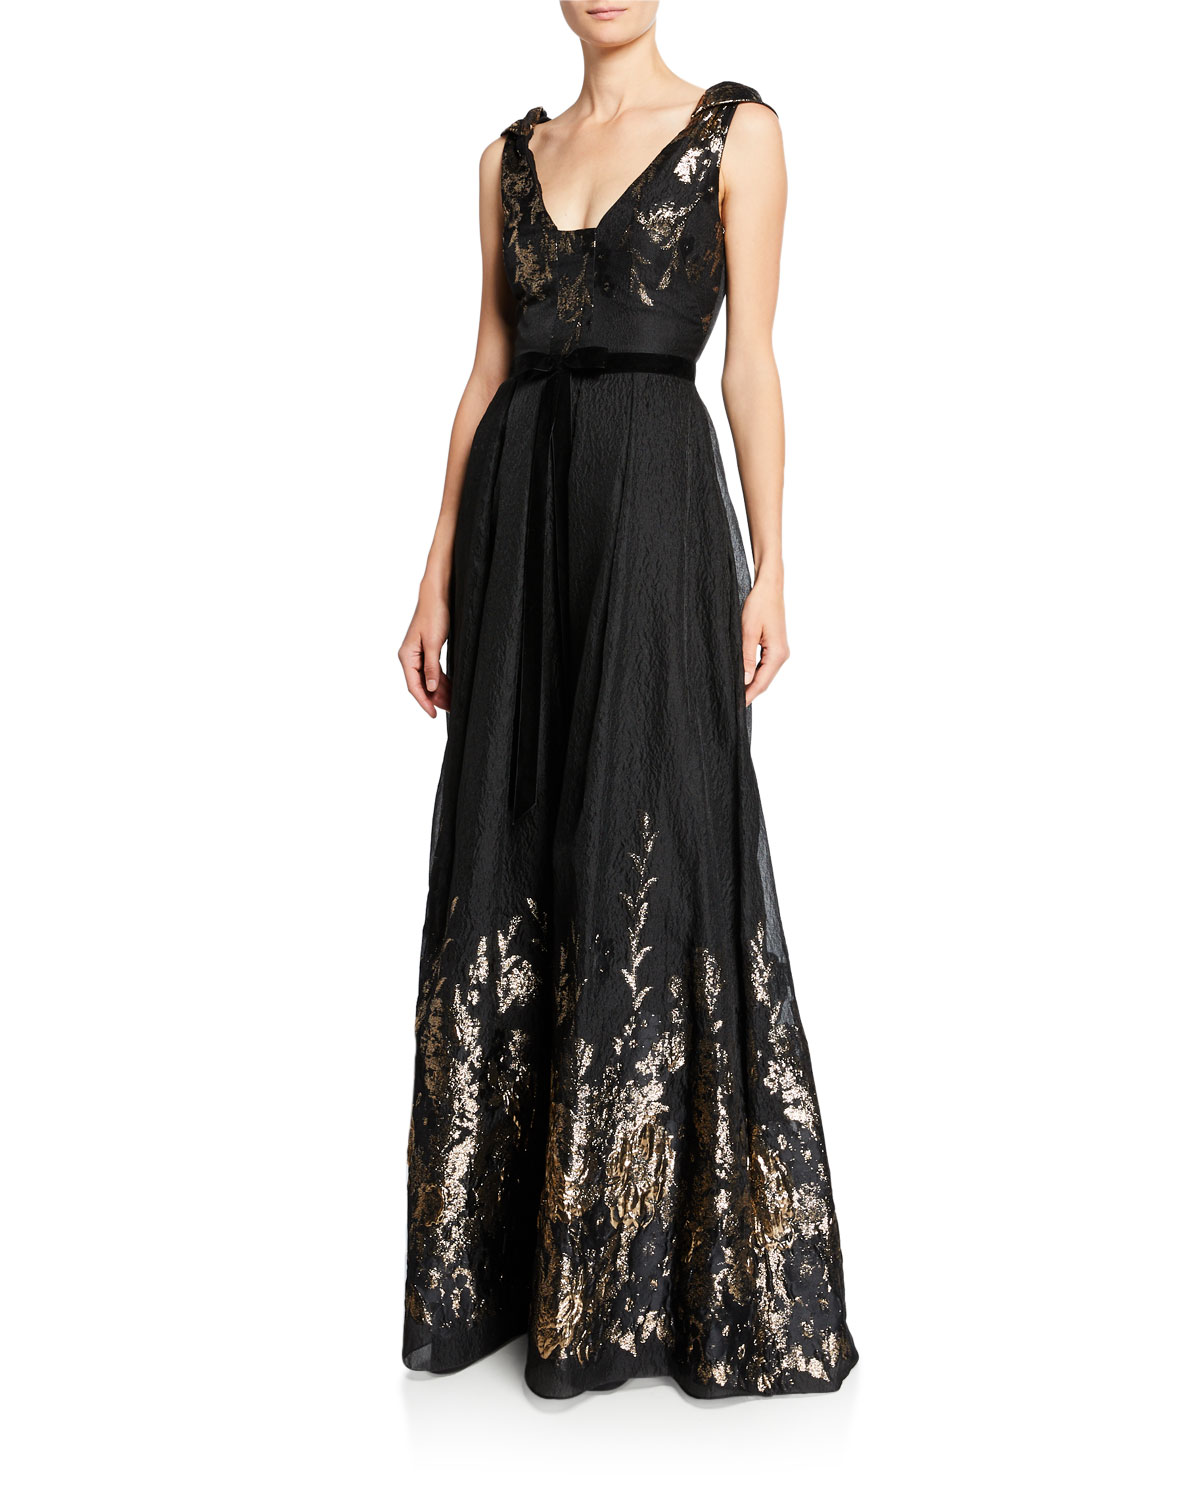 Marchesa Notte V-Neck Sleeveless Metallic Fils Coupe Gown w/ Shoulder Detailing